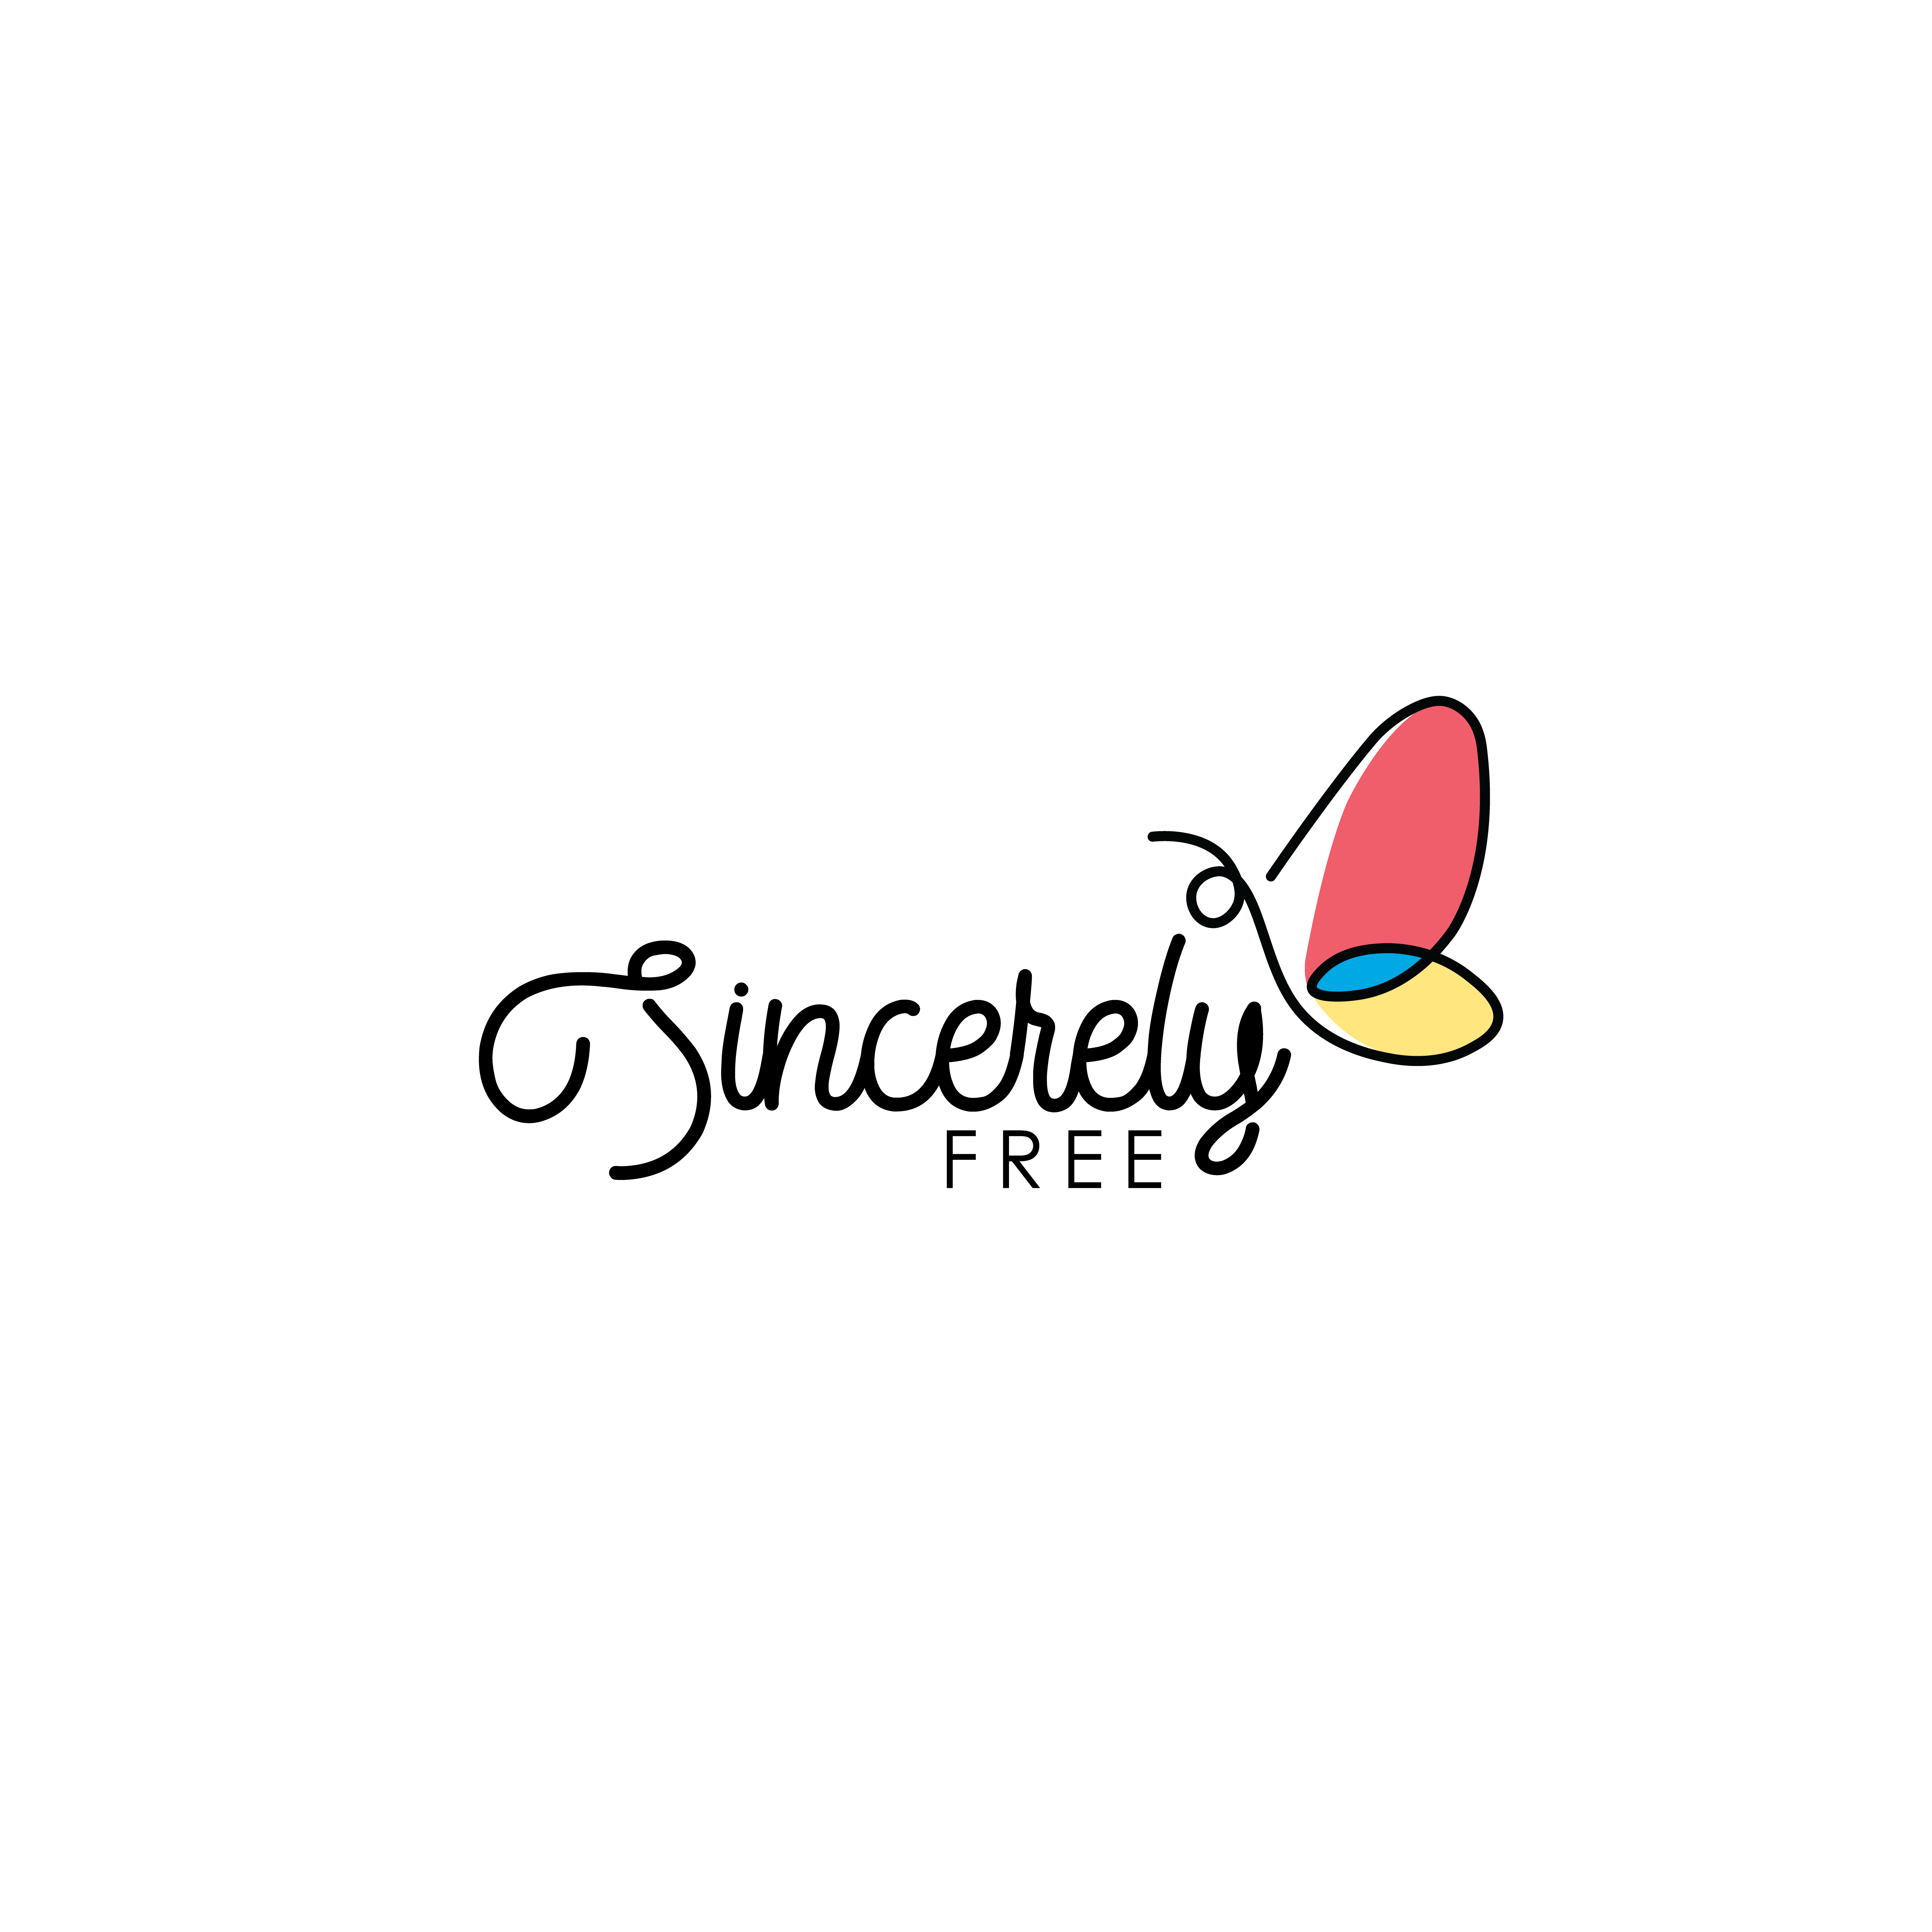 Sincerely Free Logo White Background